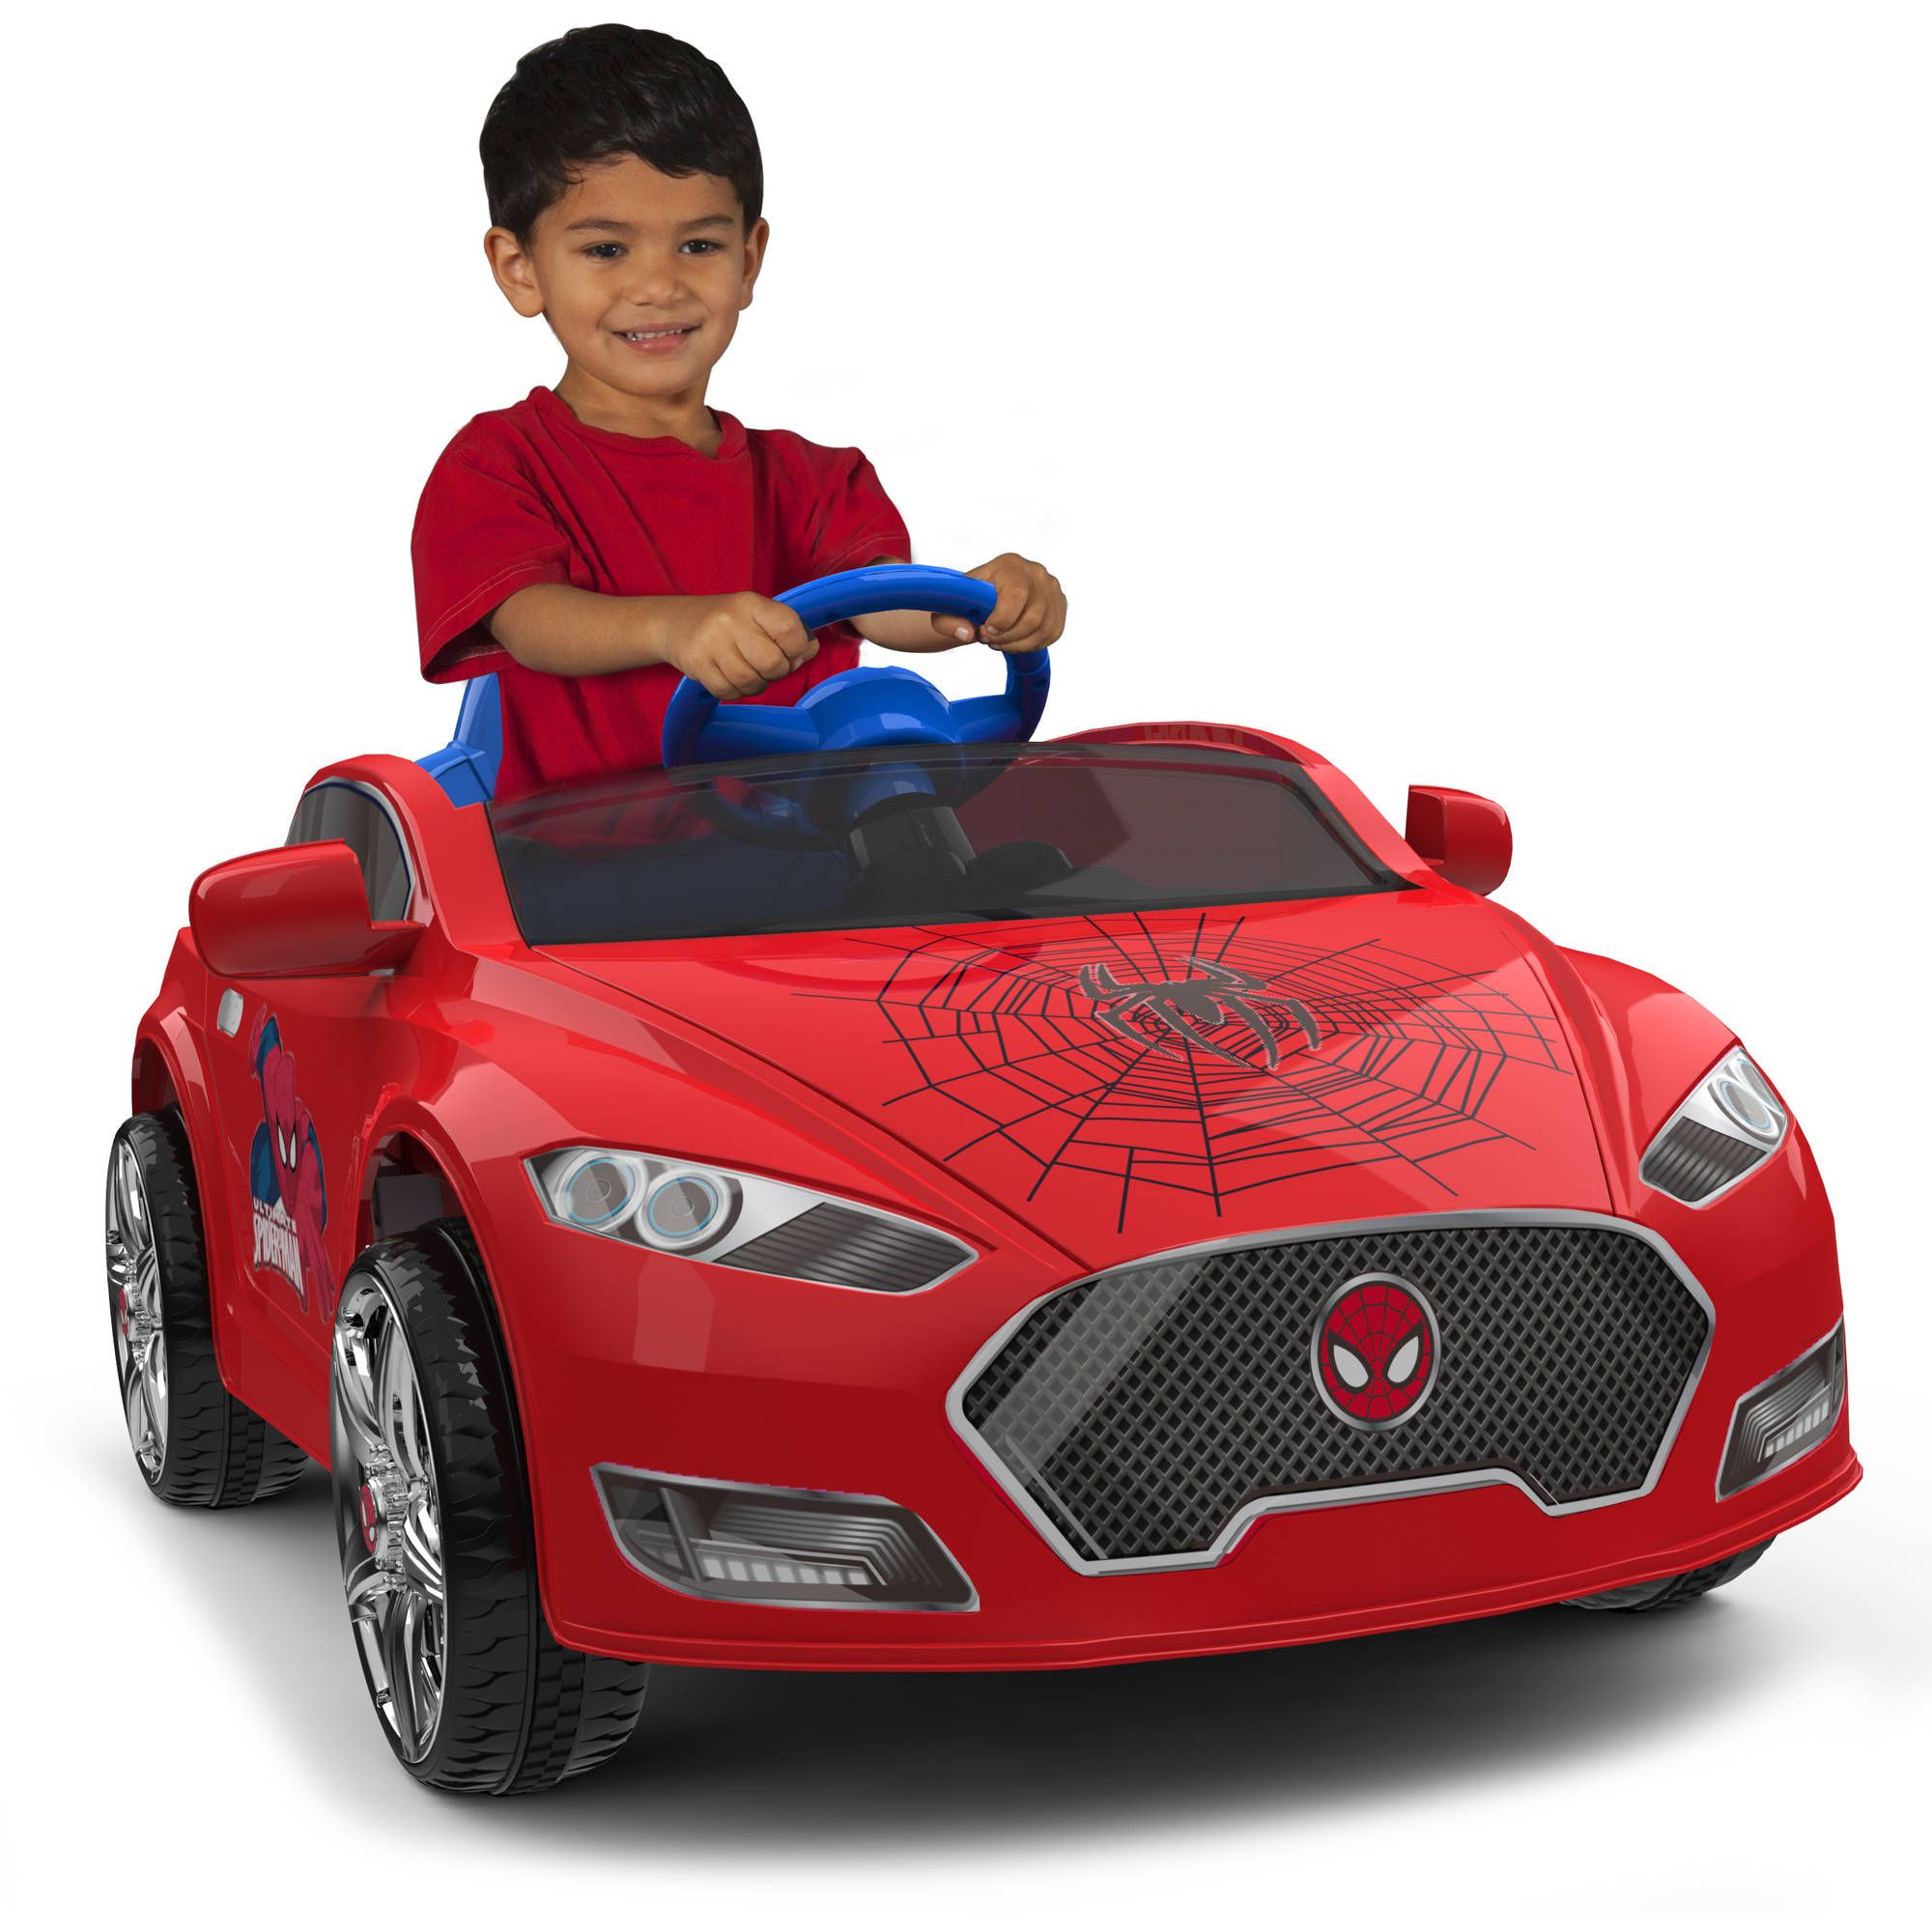 Best Choice Products 12v Kids Battery Powered Remote Control Electric Rc Ride On Car W Led Lights Mp3 Aux Red Walmart Com Toy Cars For Kids Ride On Toys Toddler Sports